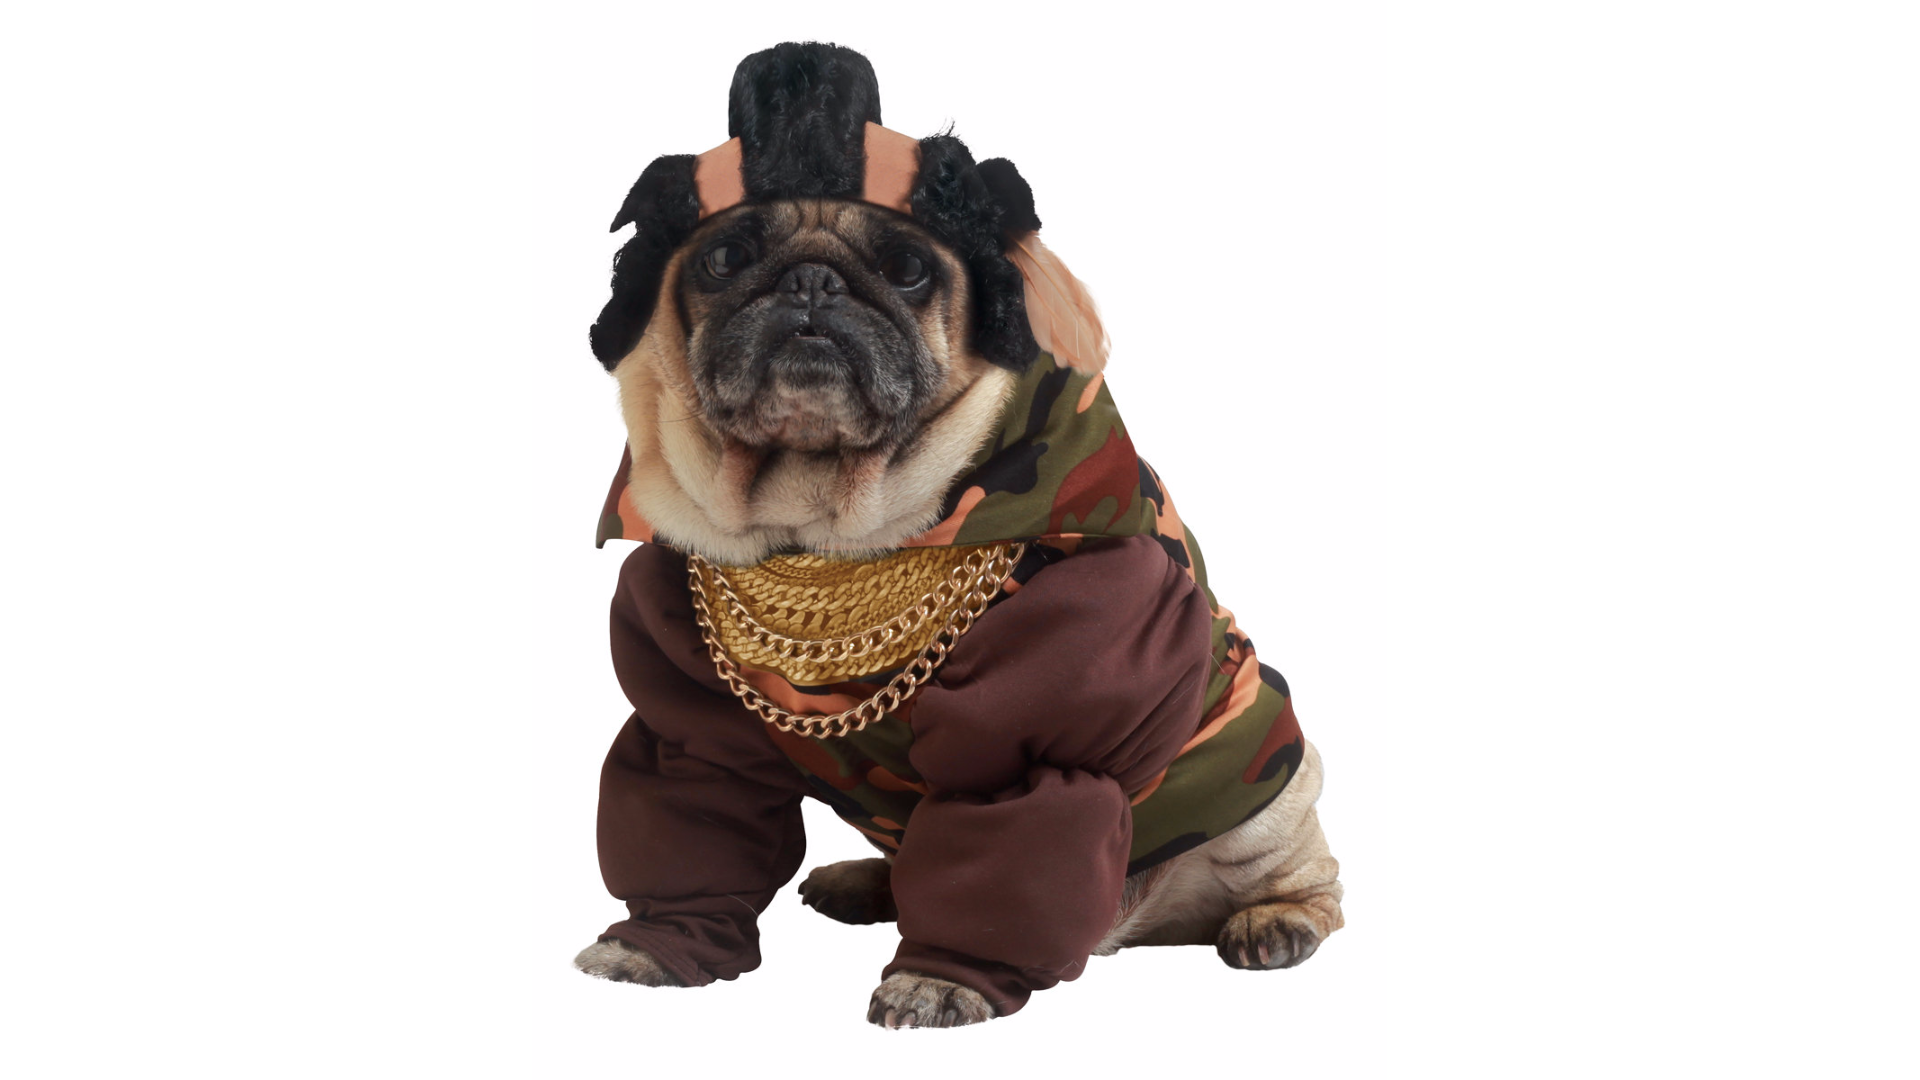 This costume that turns your dog into the legendary Mr. T